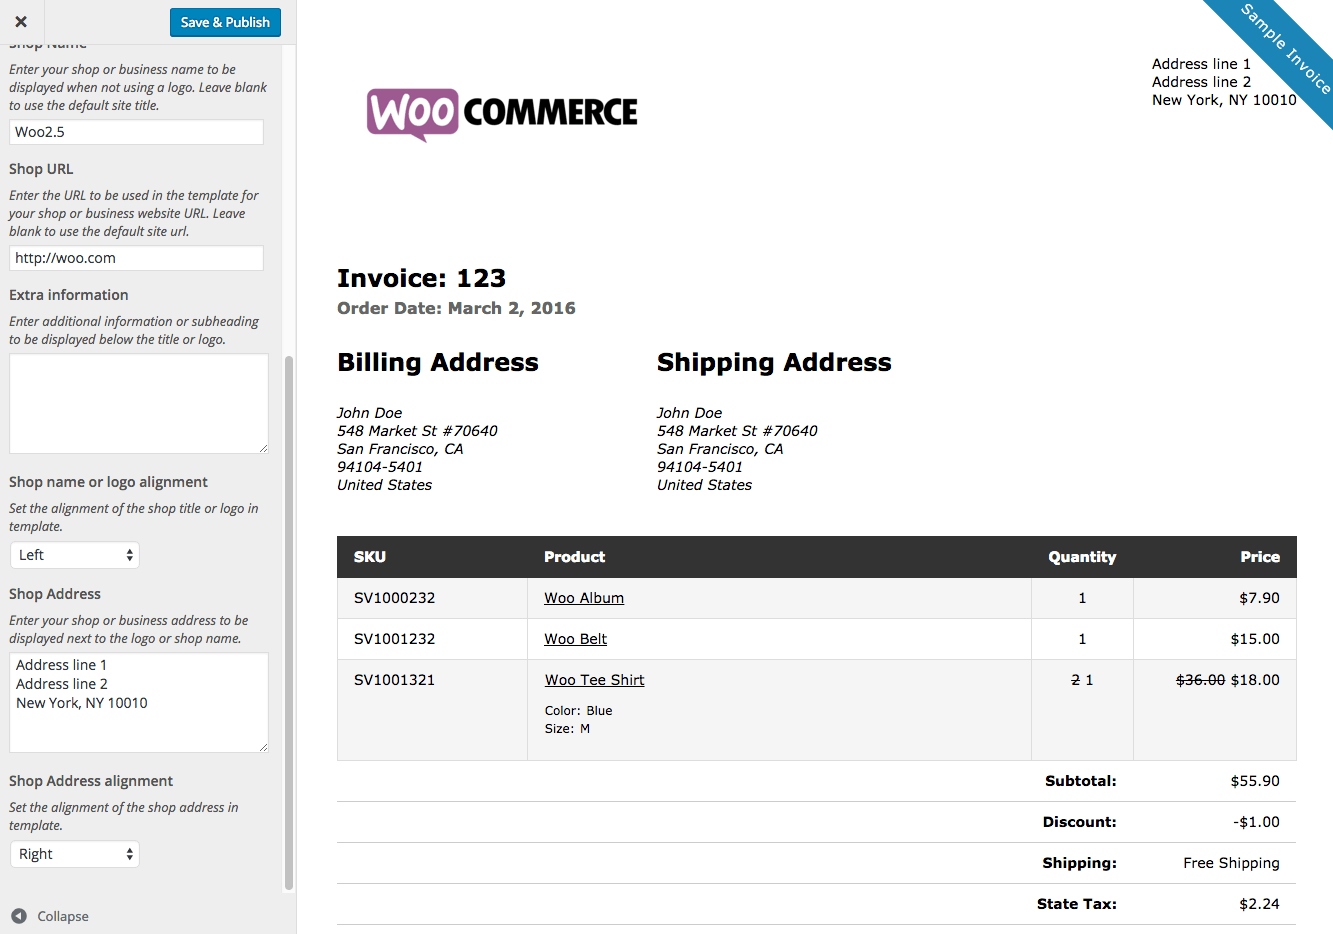 Aldiablosus  Pleasant Woocommerce Print Invoices Amp Packing Lists  Woocommerce Docs With Exciting Woocommerce Print Invoices  Packing Lists Customizer With Astounding What Is Factory Invoice Also Profarma Invoice In Addition Payment On The Invoice And Proforma Invoice Payment Terms As Well As Write Off Unpaid Invoices Additionally Ups Invoice Guide From Docswoocommercecom With Aldiablosus  Exciting Woocommerce Print Invoices Amp Packing Lists  Woocommerce Docs With Astounding Woocommerce Print Invoices  Packing Lists Customizer And Pleasant What Is Factory Invoice Also Profarma Invoice In Addition Payment On The Invoice From Docswoocommercecom